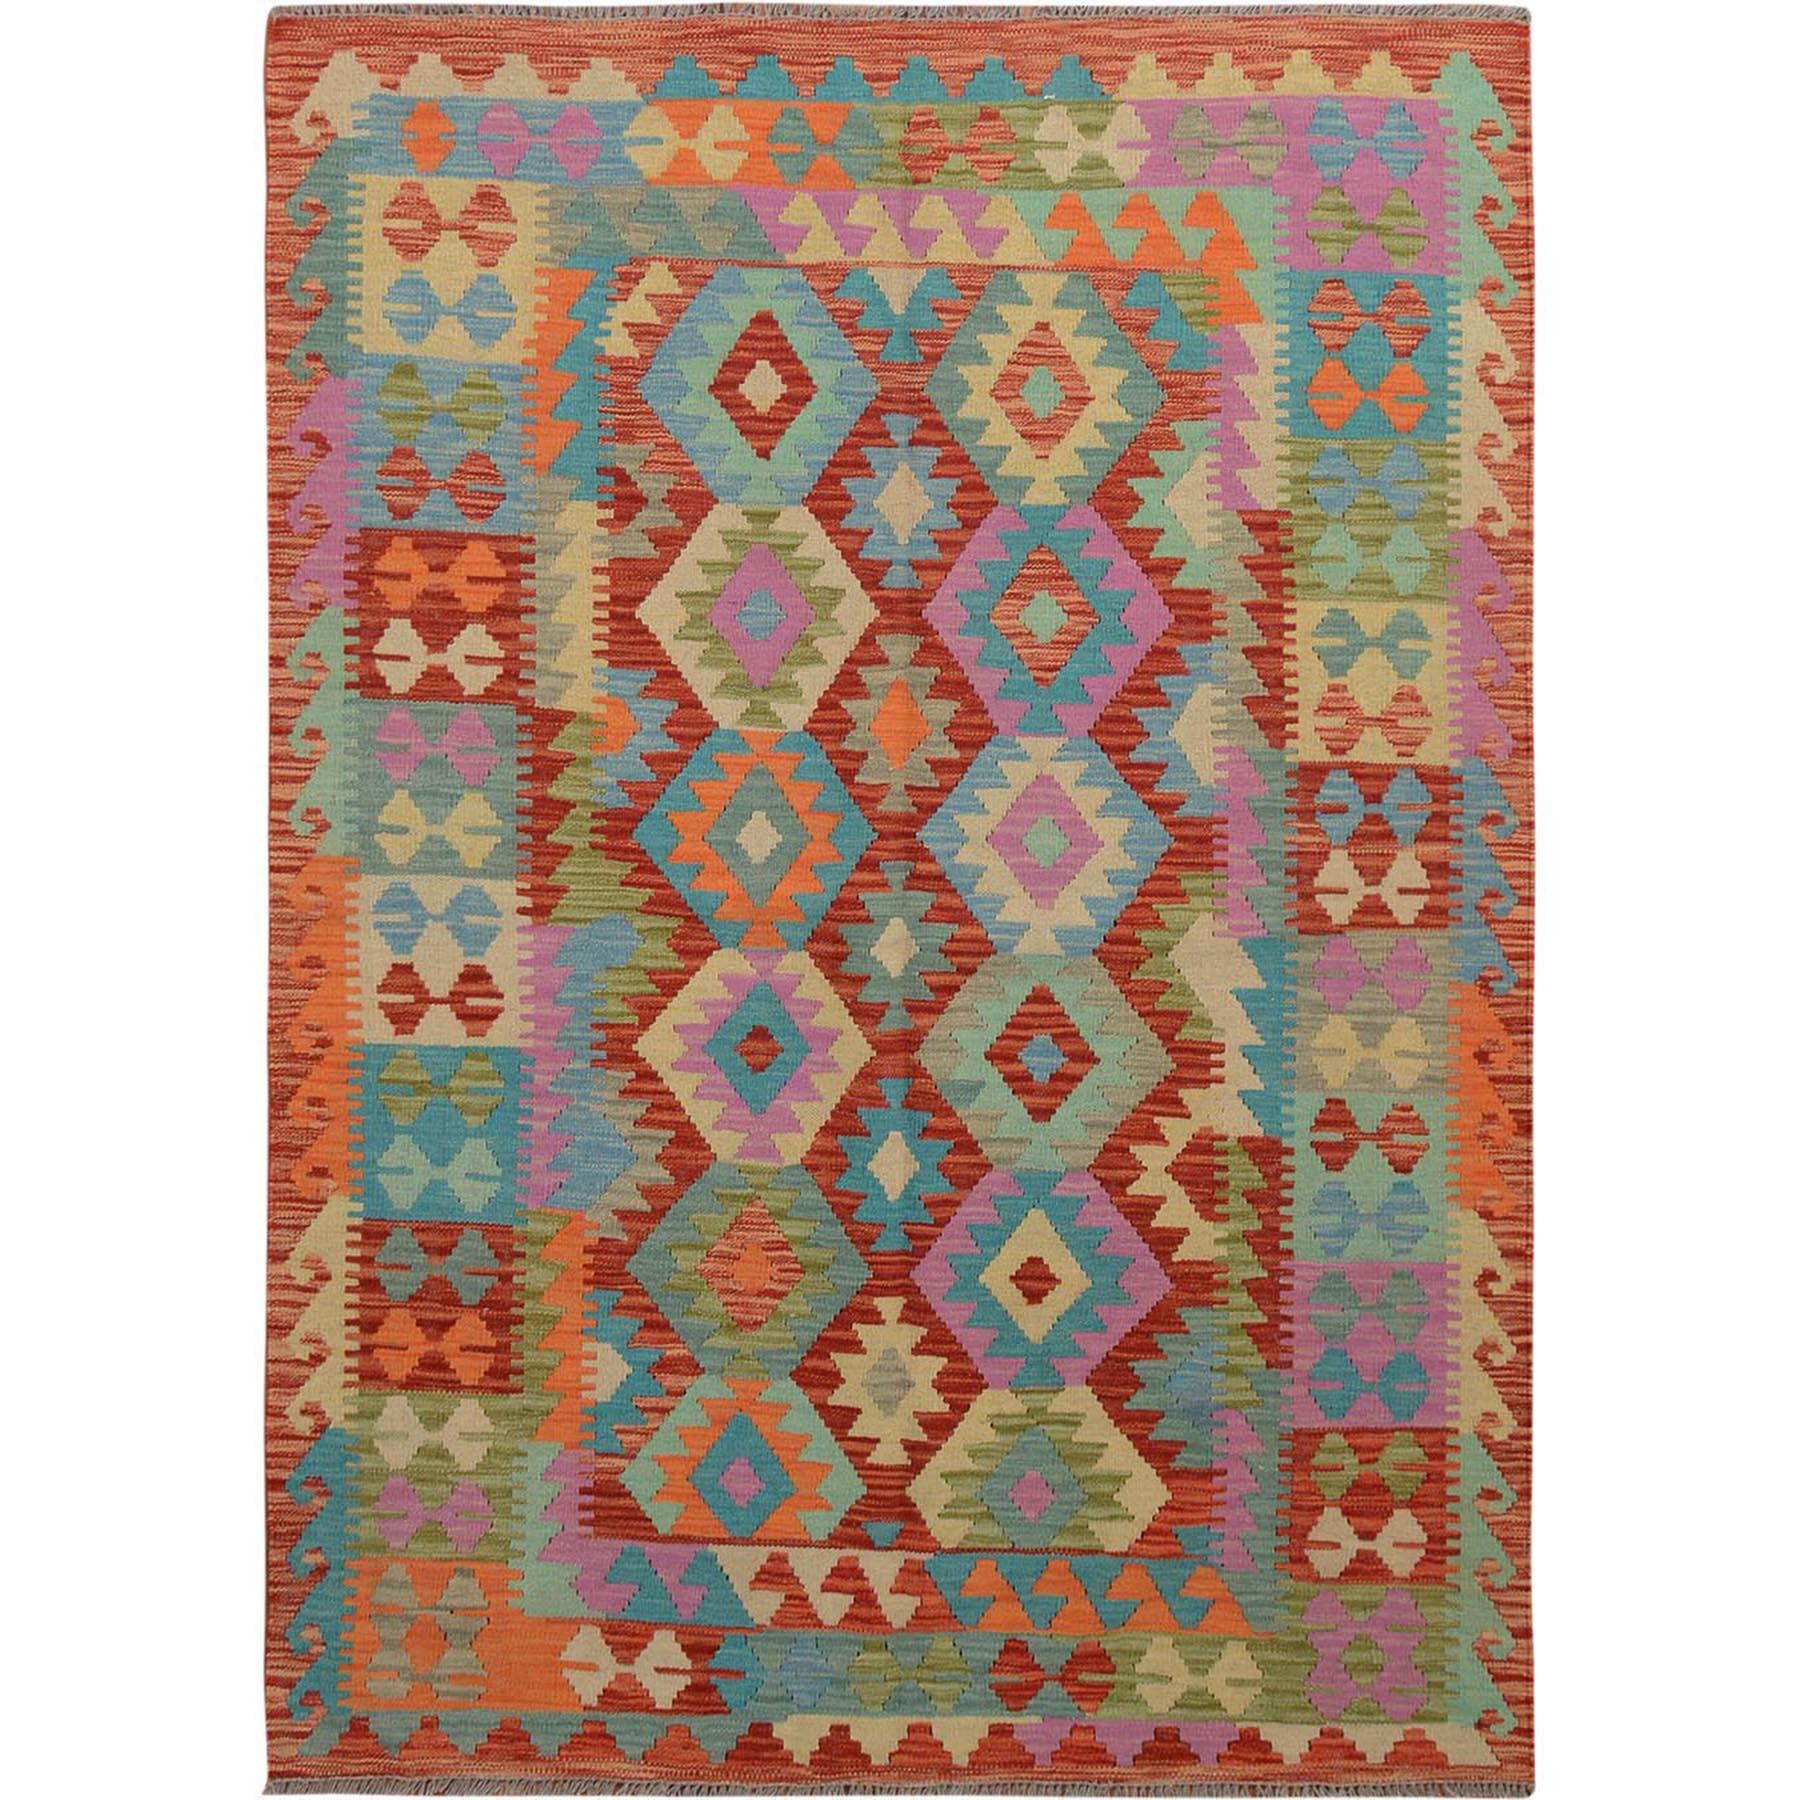 "4'10""x6'6"" Colorful Afghan Reversible Kilim Pure Wool Hand Woven Oriental Rug"